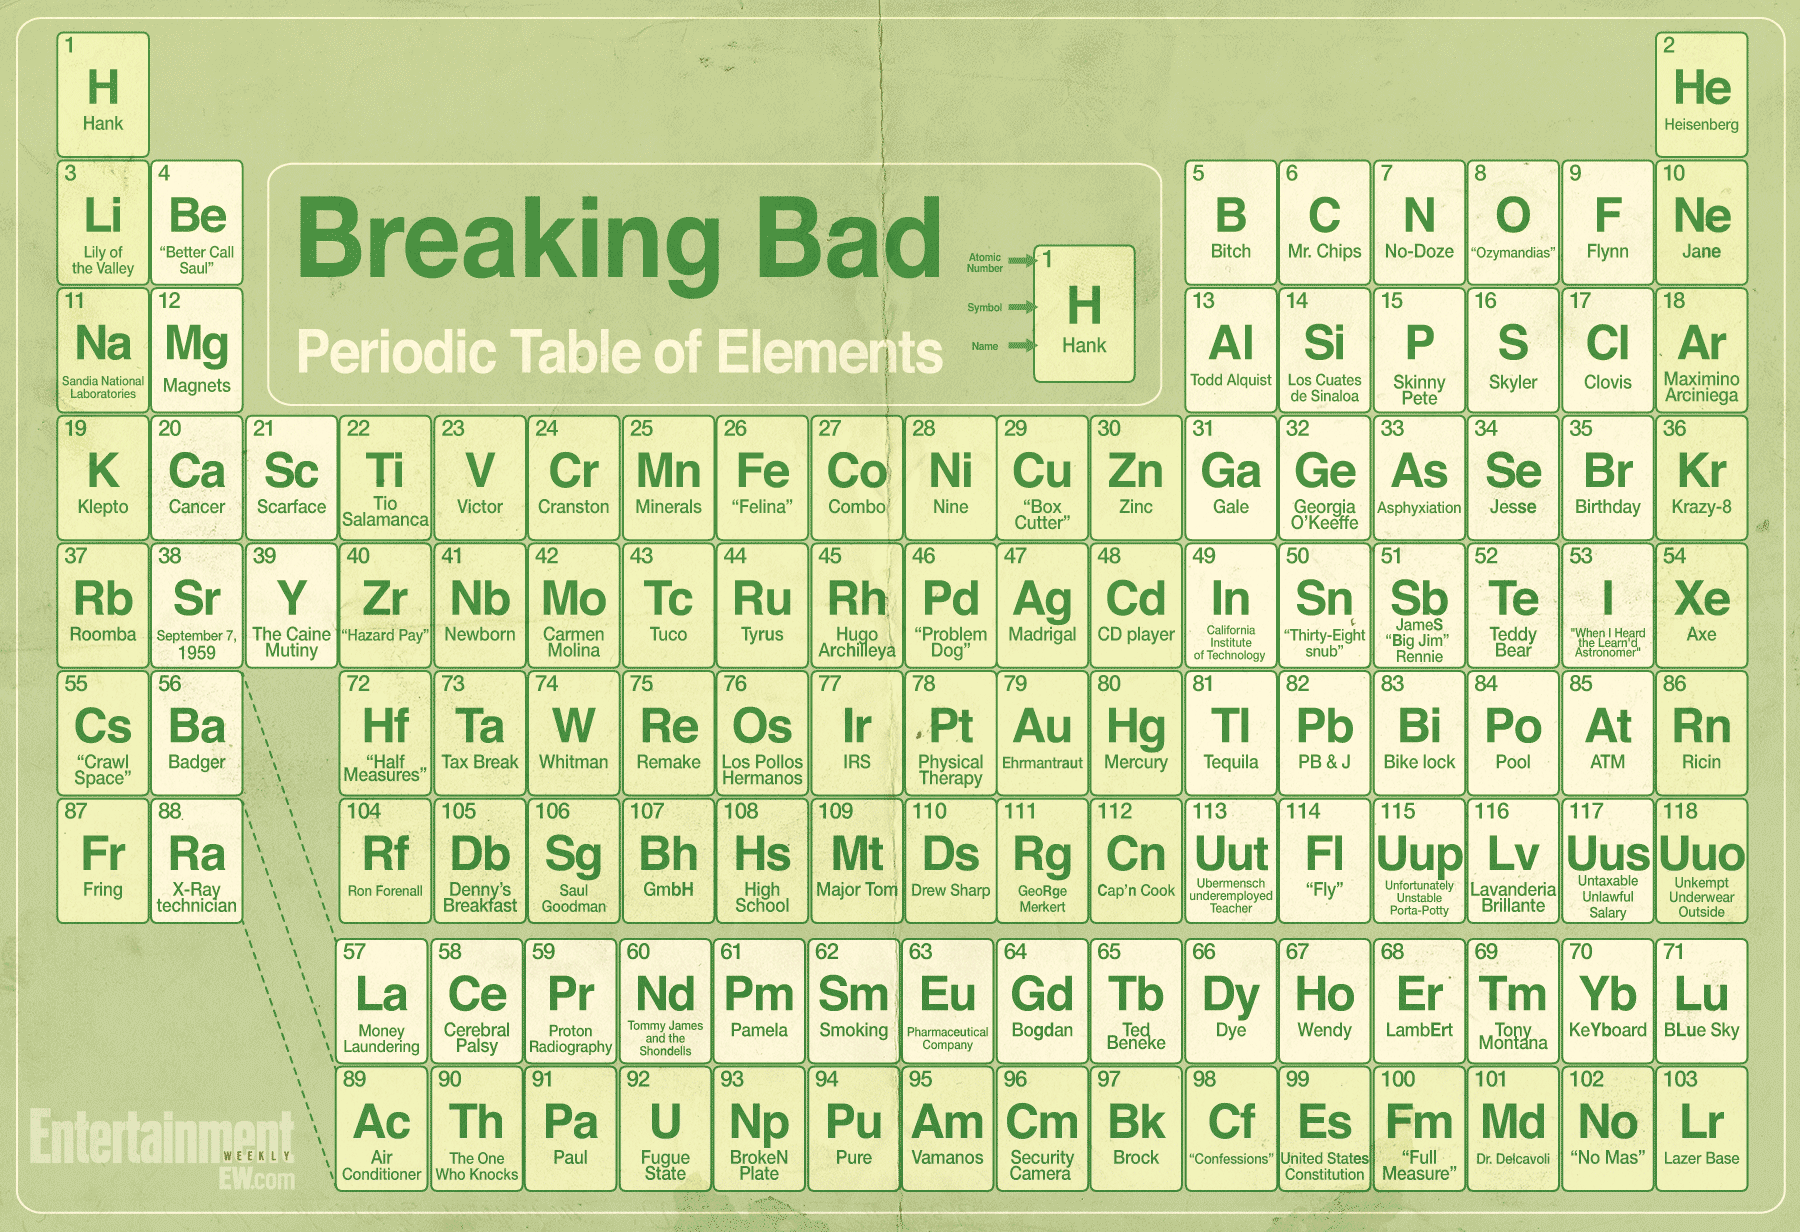 Creator of the first periodic table gallery periodic table images modern periodic table creator images periodic table images modern periodic table creator images periodic table images gamestrikefo Image collections